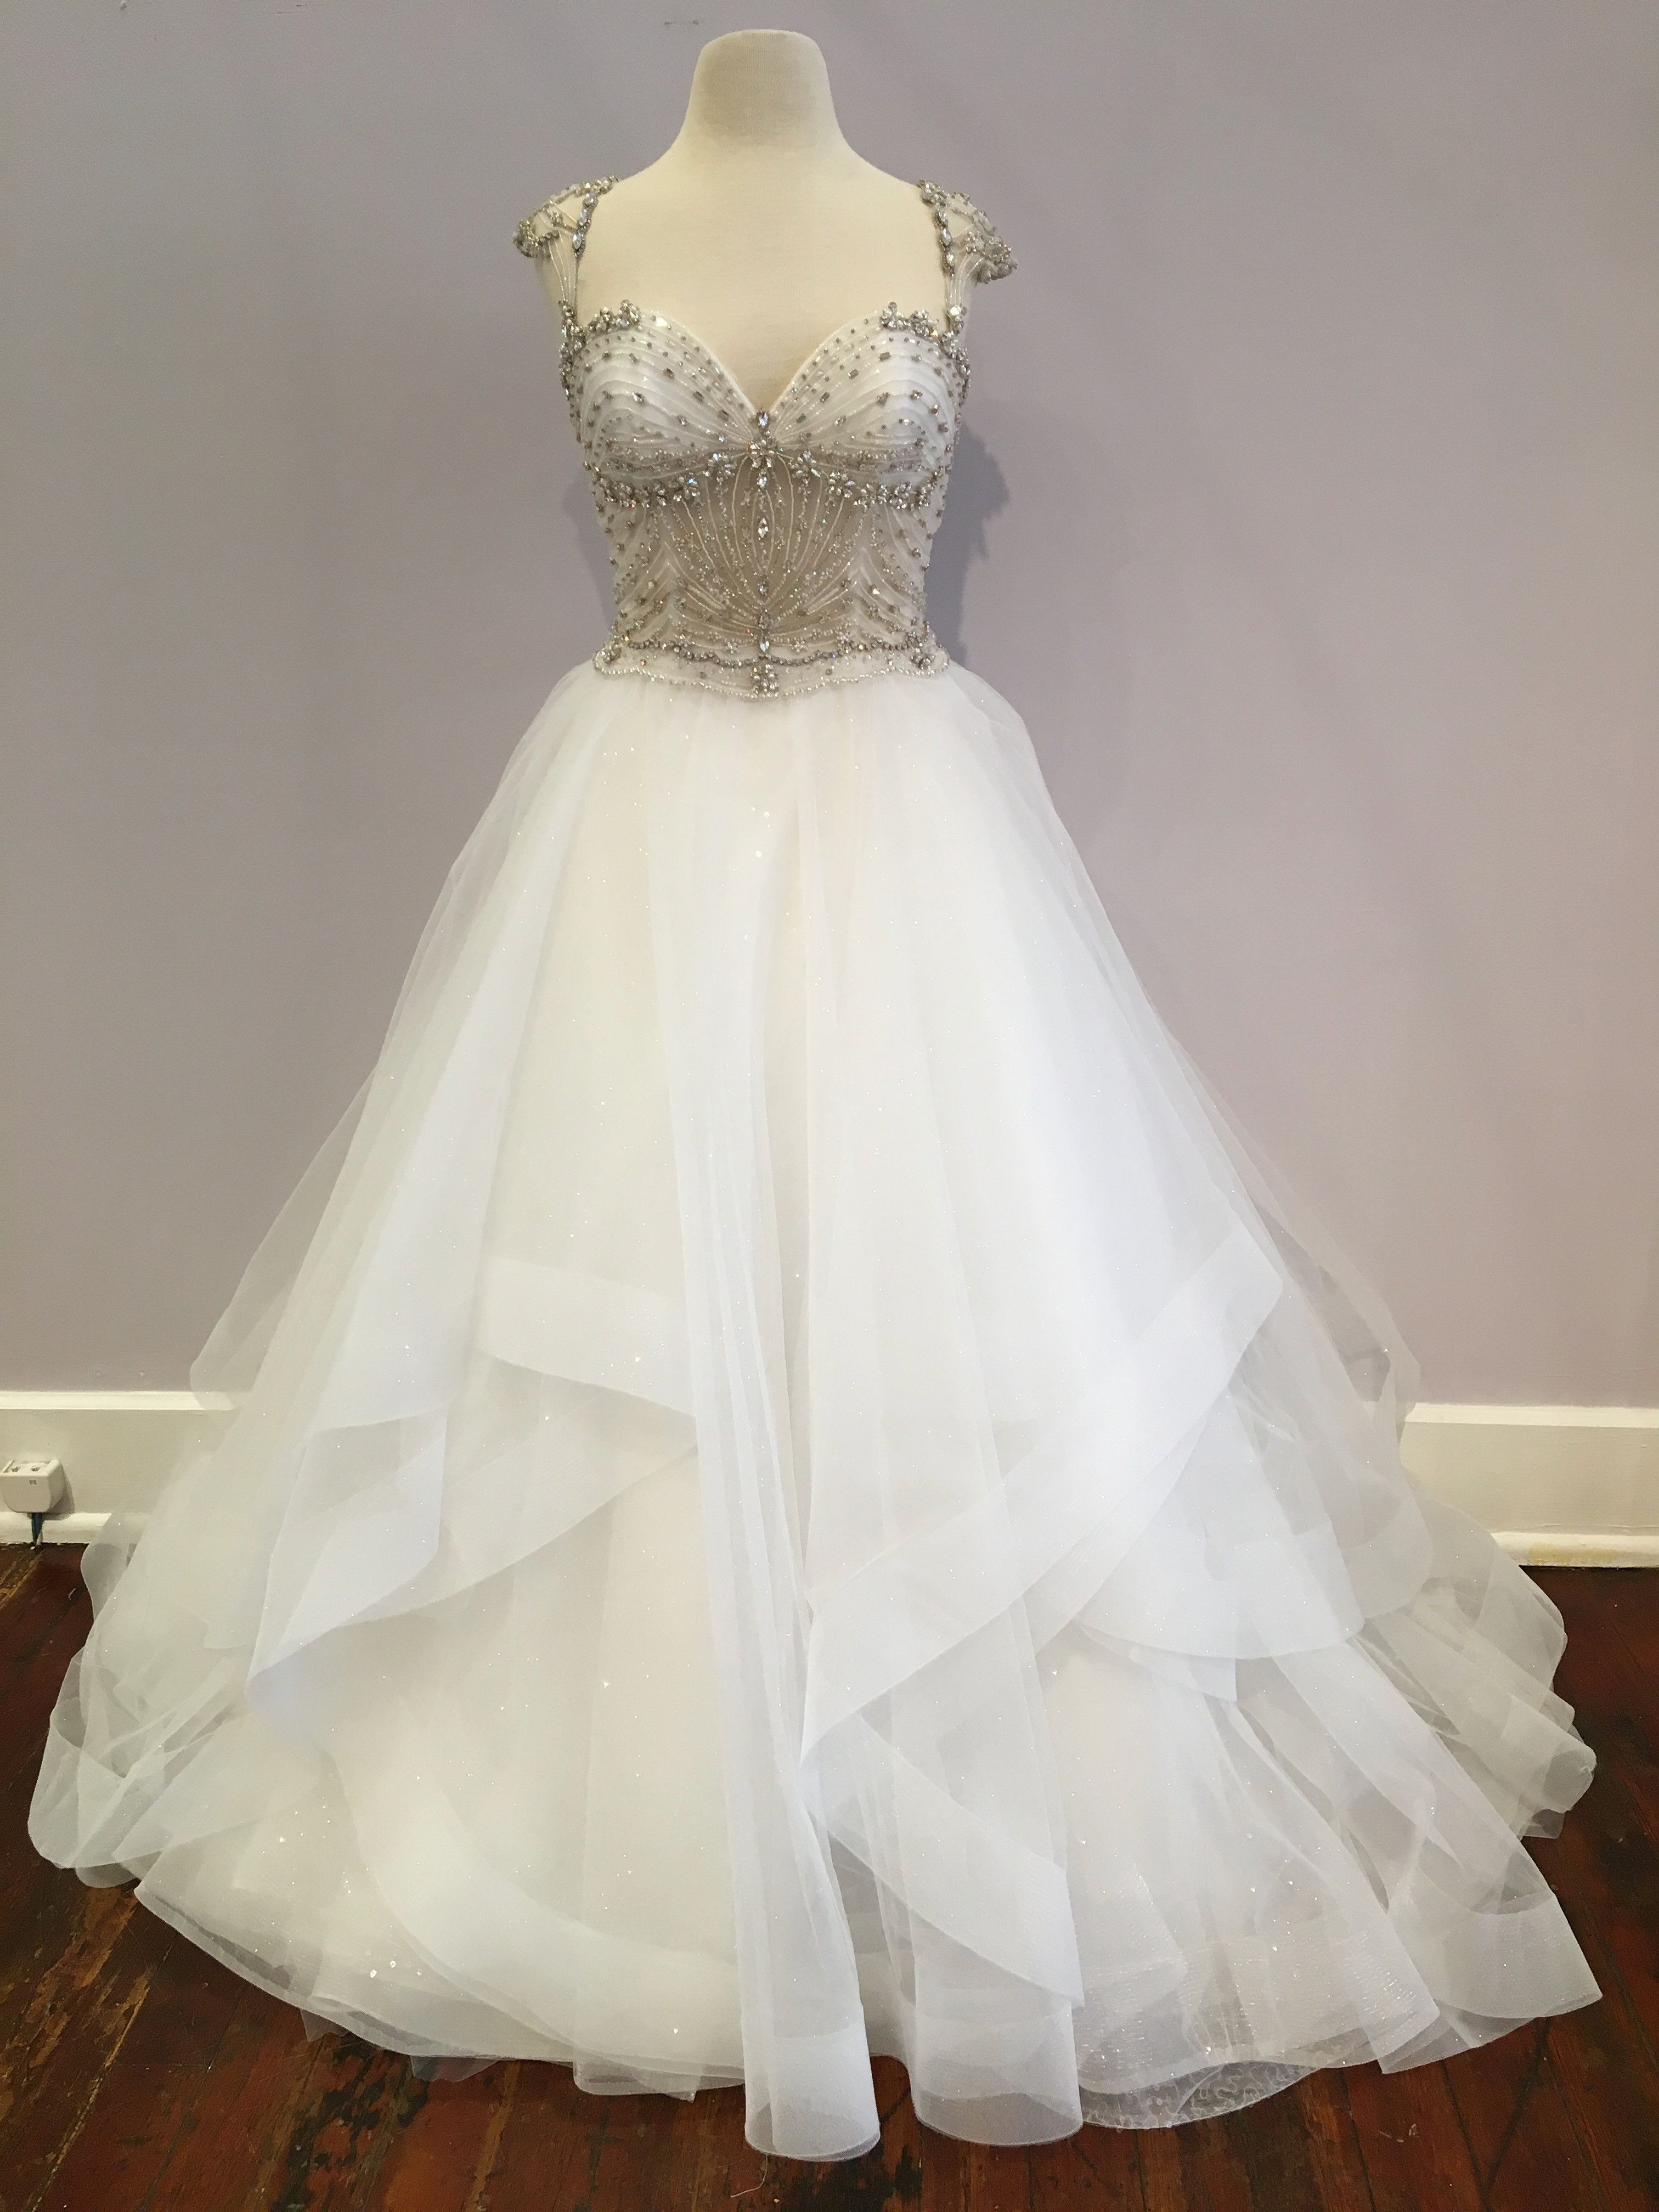 2deb5108c7ab Eve of Milady 1548 is a glamorous ball gown! The sculpted bodice features a  sweetheart neckline framed by cap sleeves, intricate beading, and a low  back!